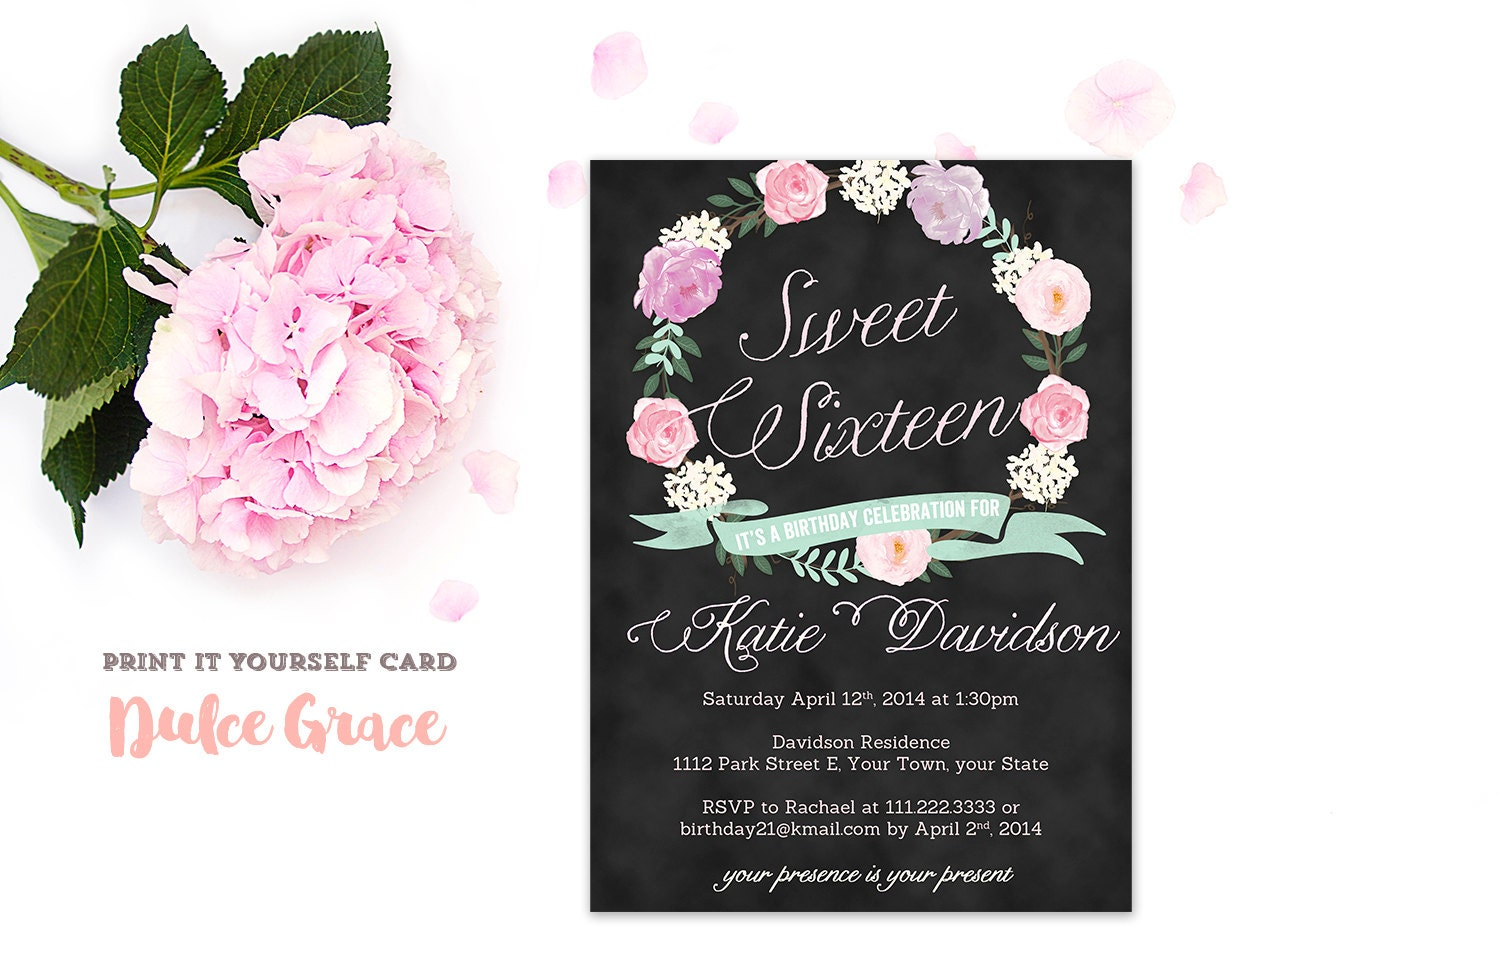 Astounding image with free printable sweet 16 invitations